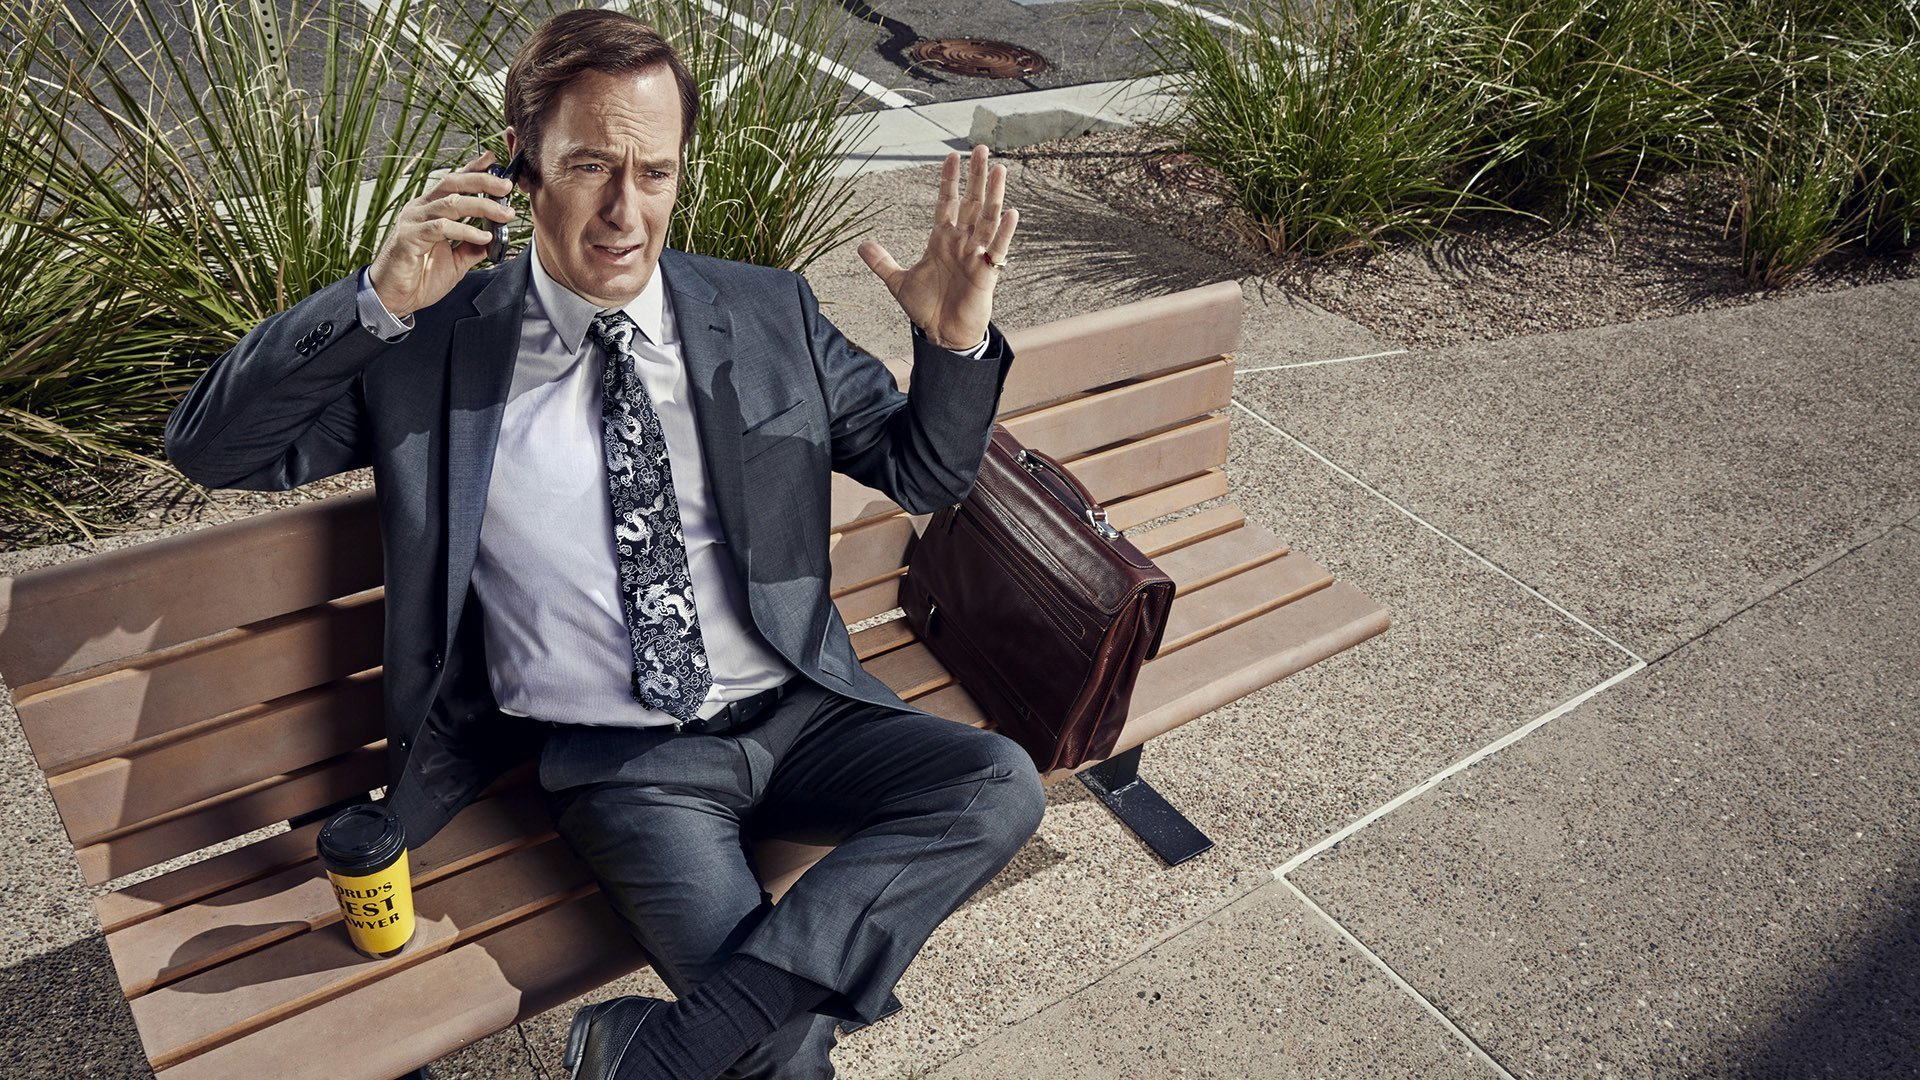 Better Call Saul Wallpapers 1920x1080 Full Hd 1080p